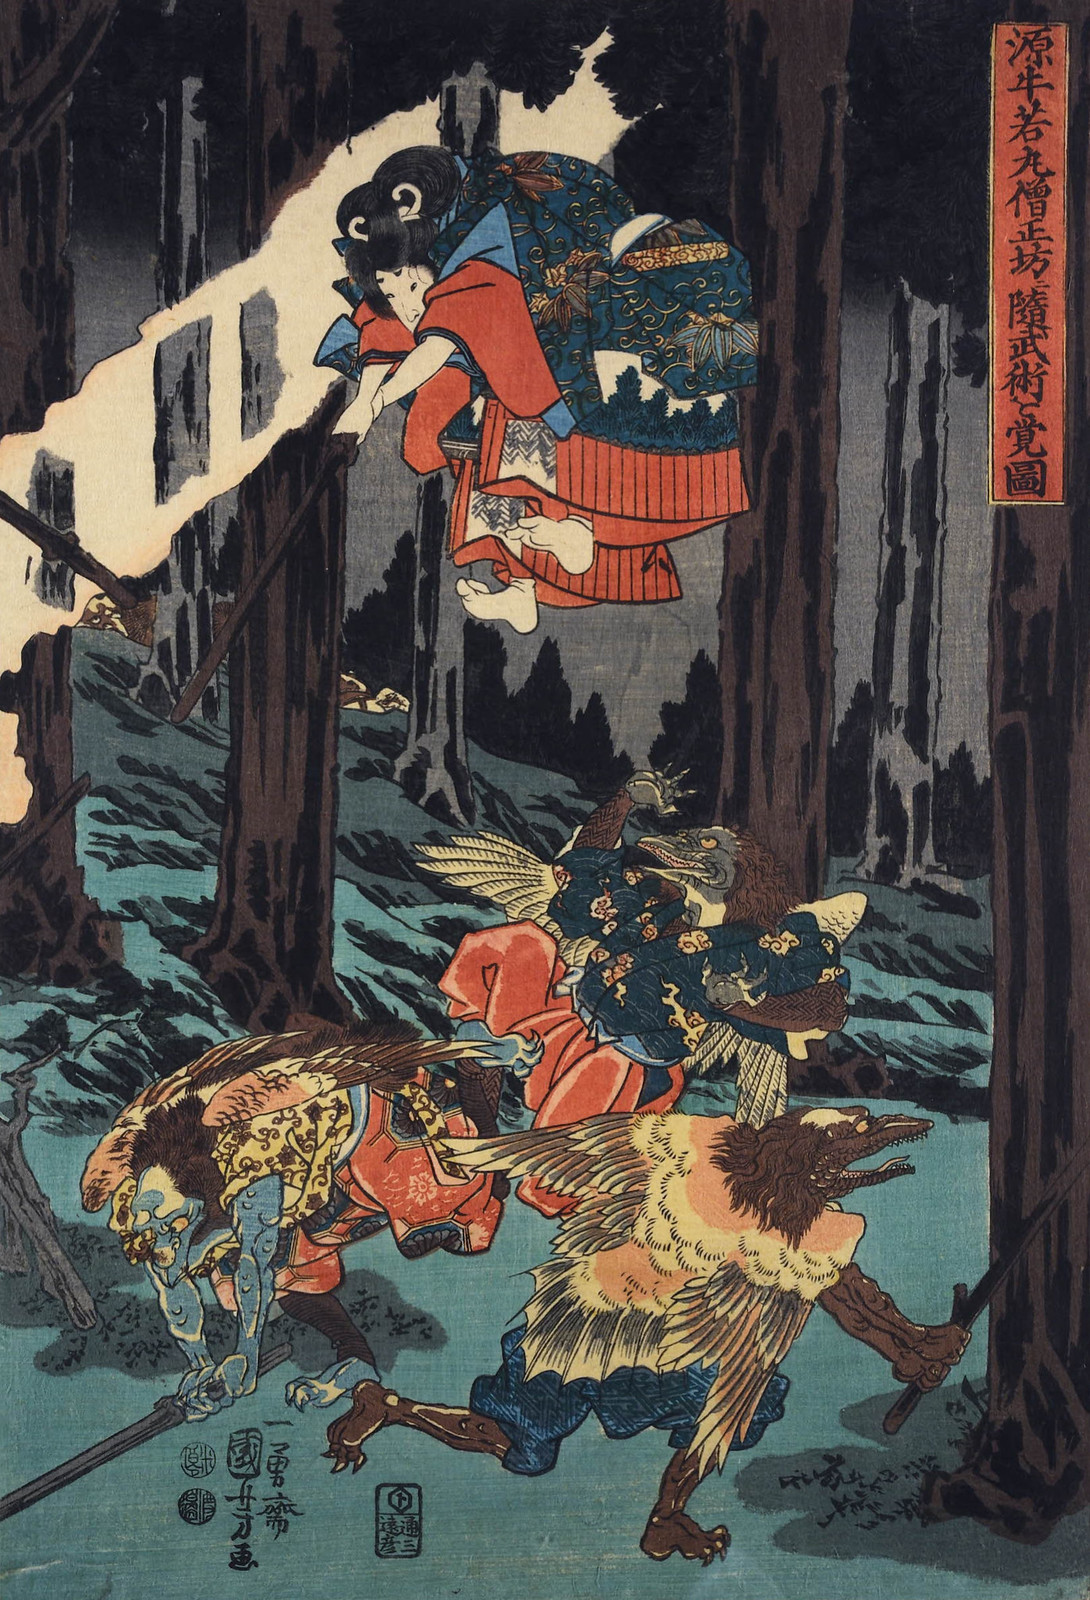 Utagawa Kuniyoshi - Sojobo, King of the Tengu, and Yoshitsune leaping in the air, 1847-52 (right panel)